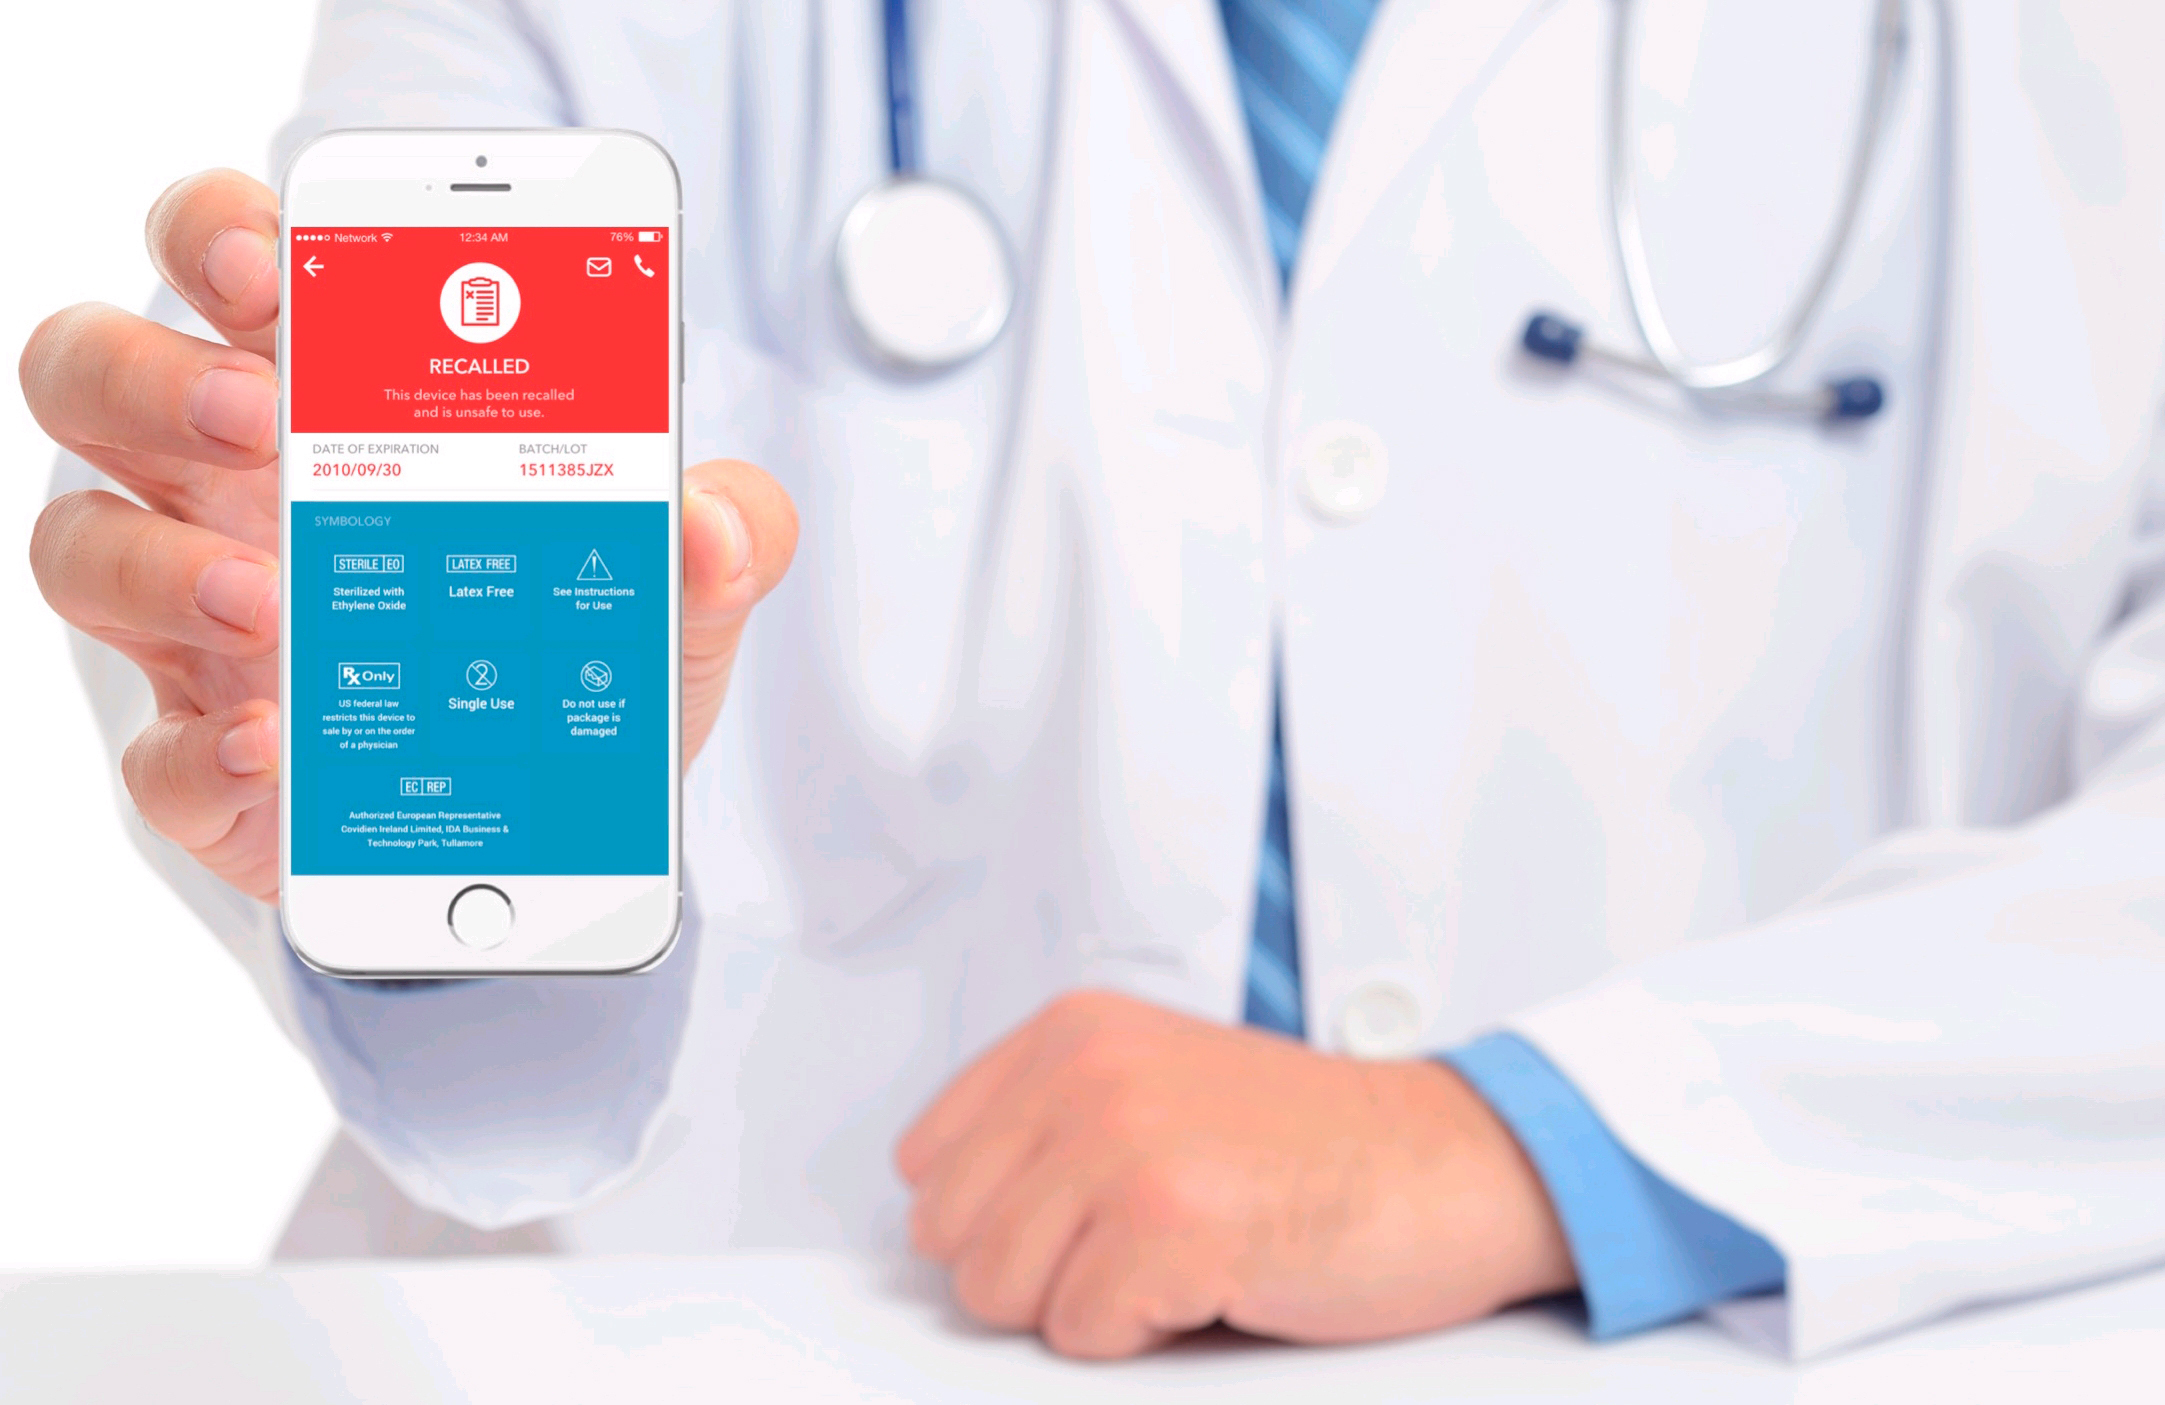 Easy scan with EnCompass App for iOS reveals product and safety information to physicians and patients and solves Master Data Management challenges for medical device industry. (Photo: Business Wire)